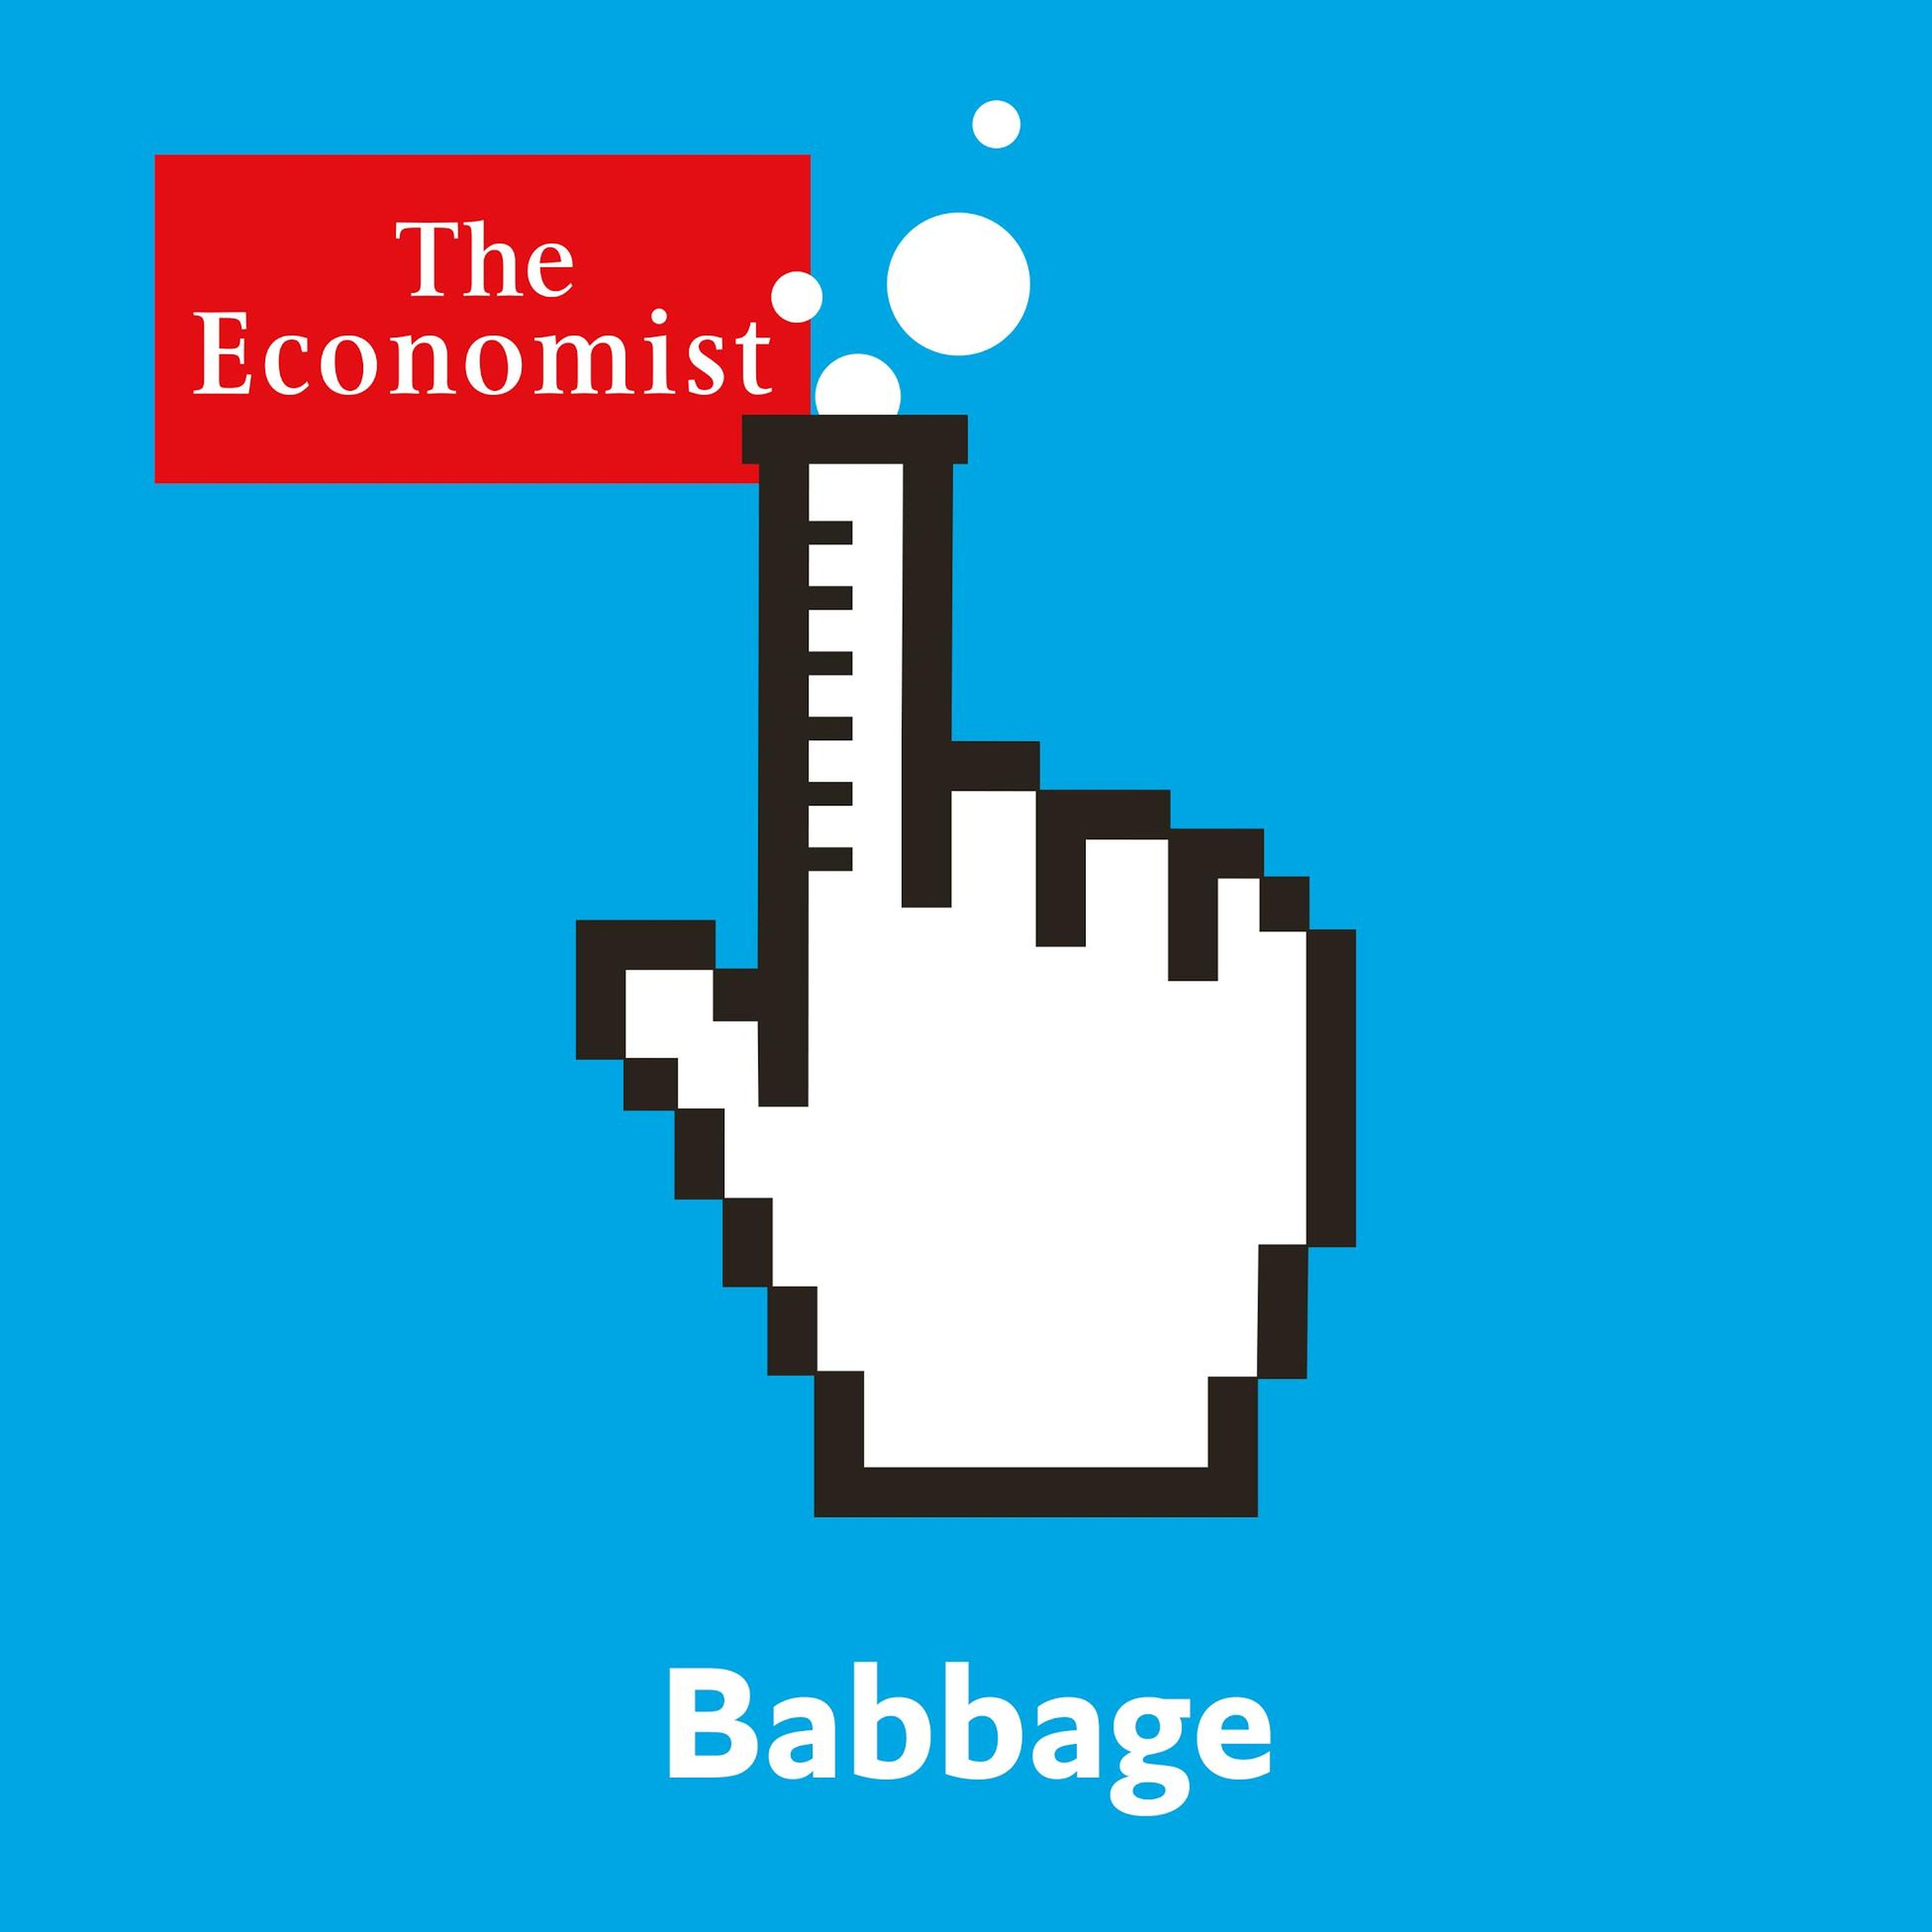 The Economist Radio Smie On 7 Pin Trailer Connector Wiring Diagram For Babbage Waymo To Go